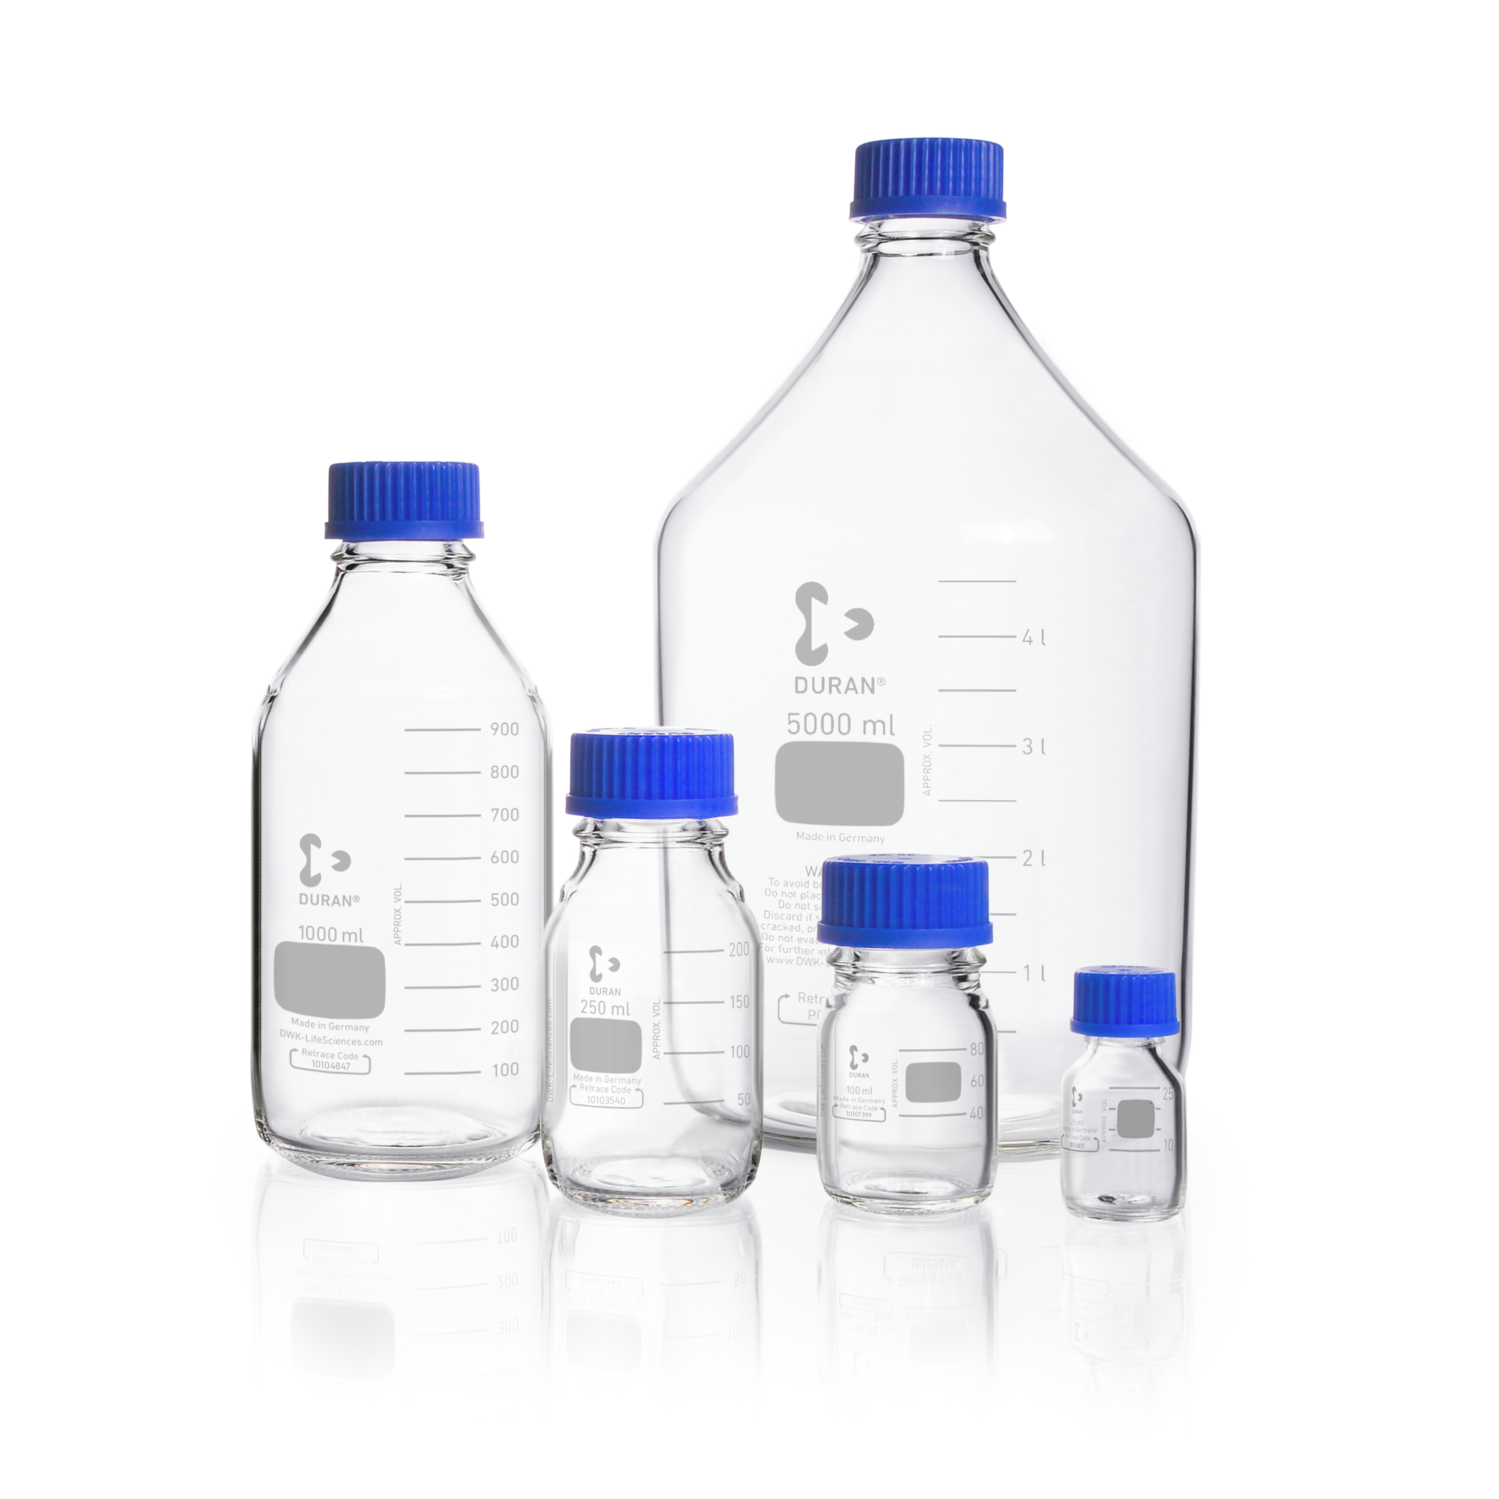 DURAN® Original GL 45 Laboratory Bottle, clear, with screw cap and pouring ring, PP, blue, 500 mL